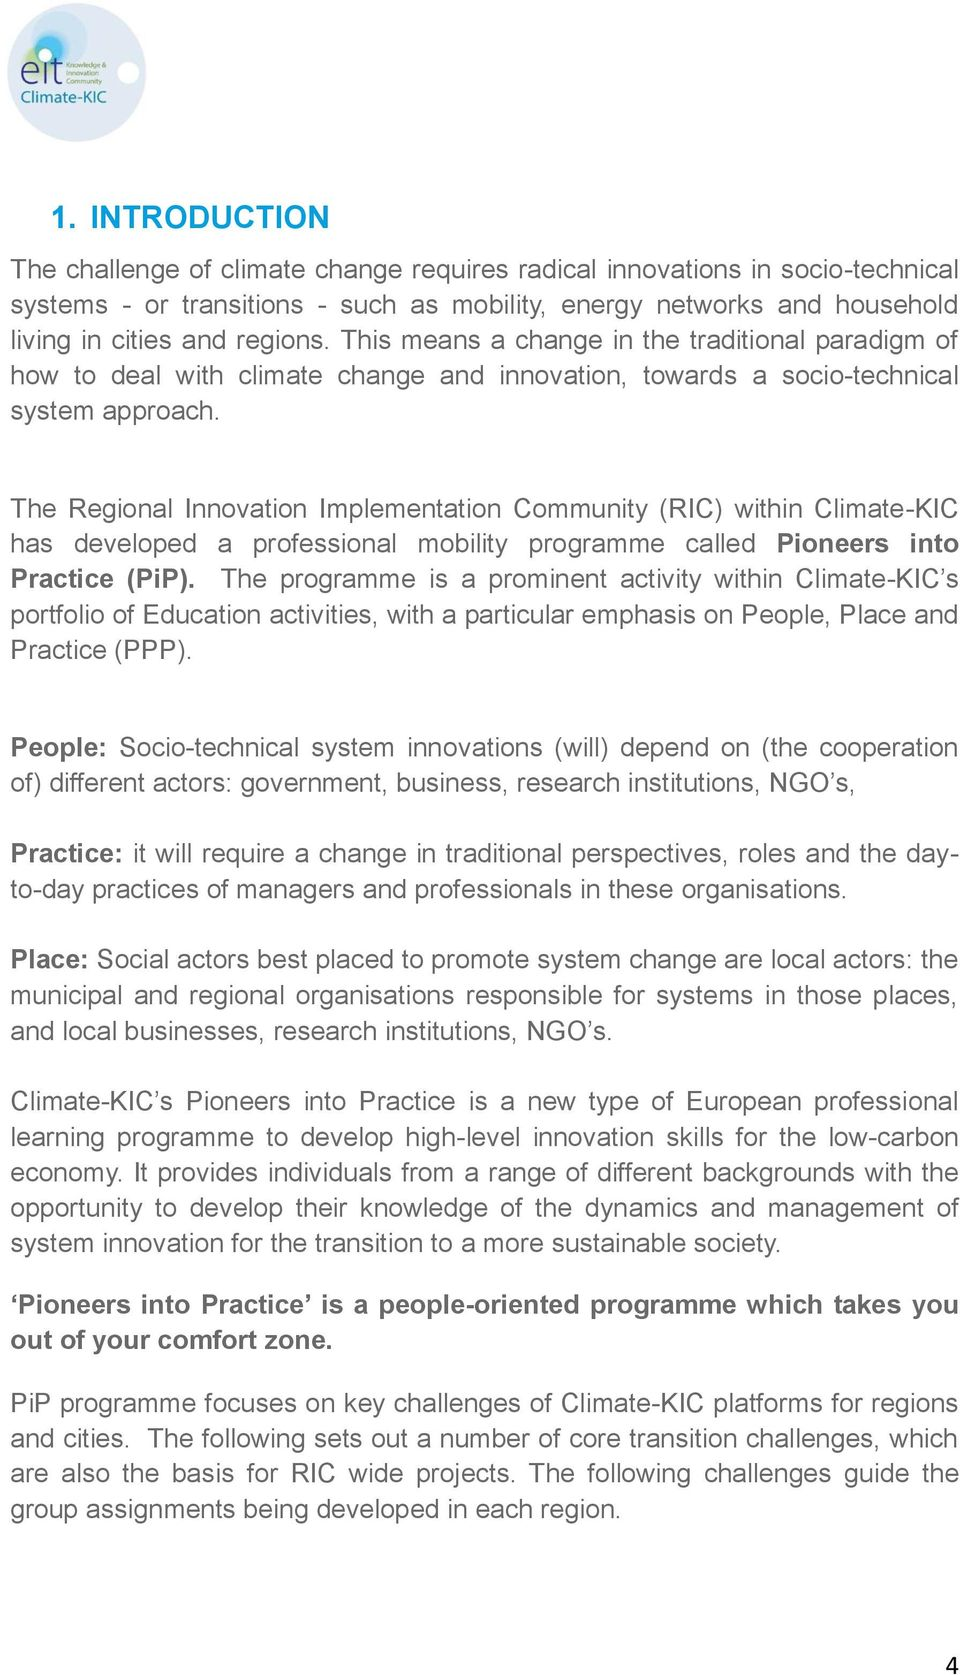 The Regional Innovation Implementation Community (RIC) within Climate-KIC has developed a professional mobility programme called Pioneers into Practice (PiP).